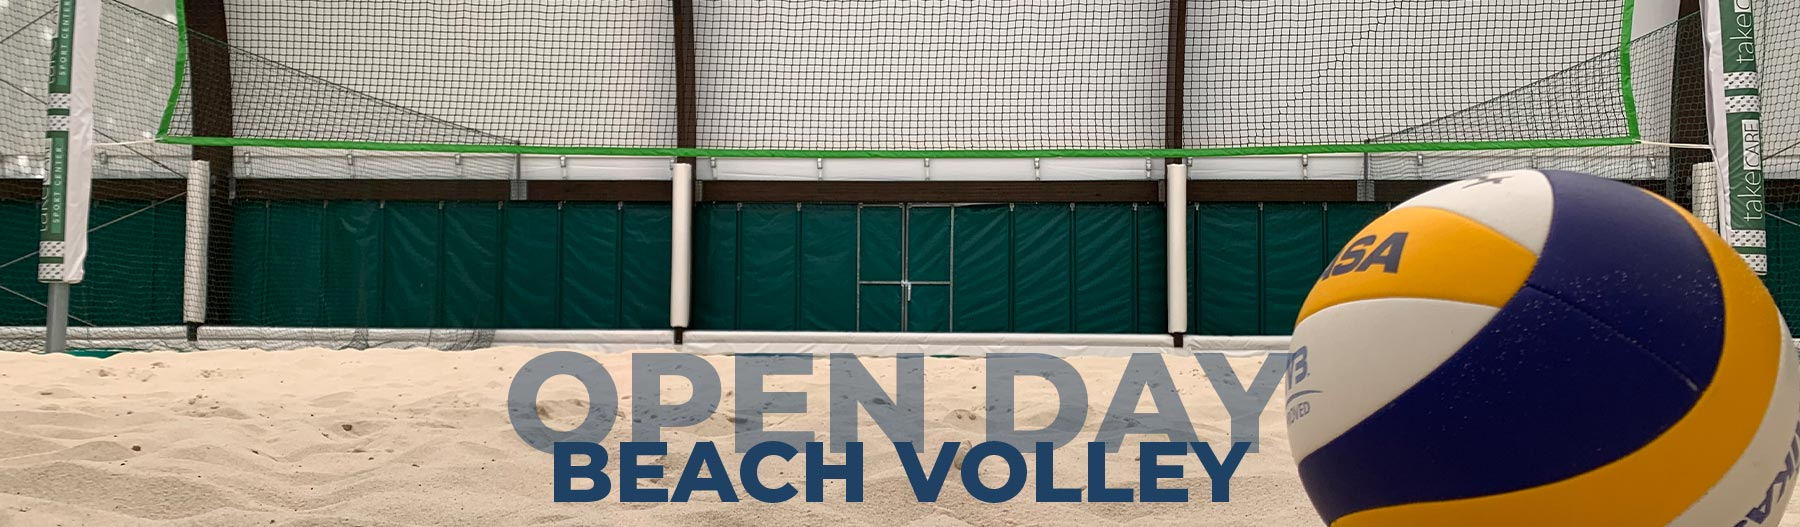 Open Day Beach Volley -Take Care Sport Center